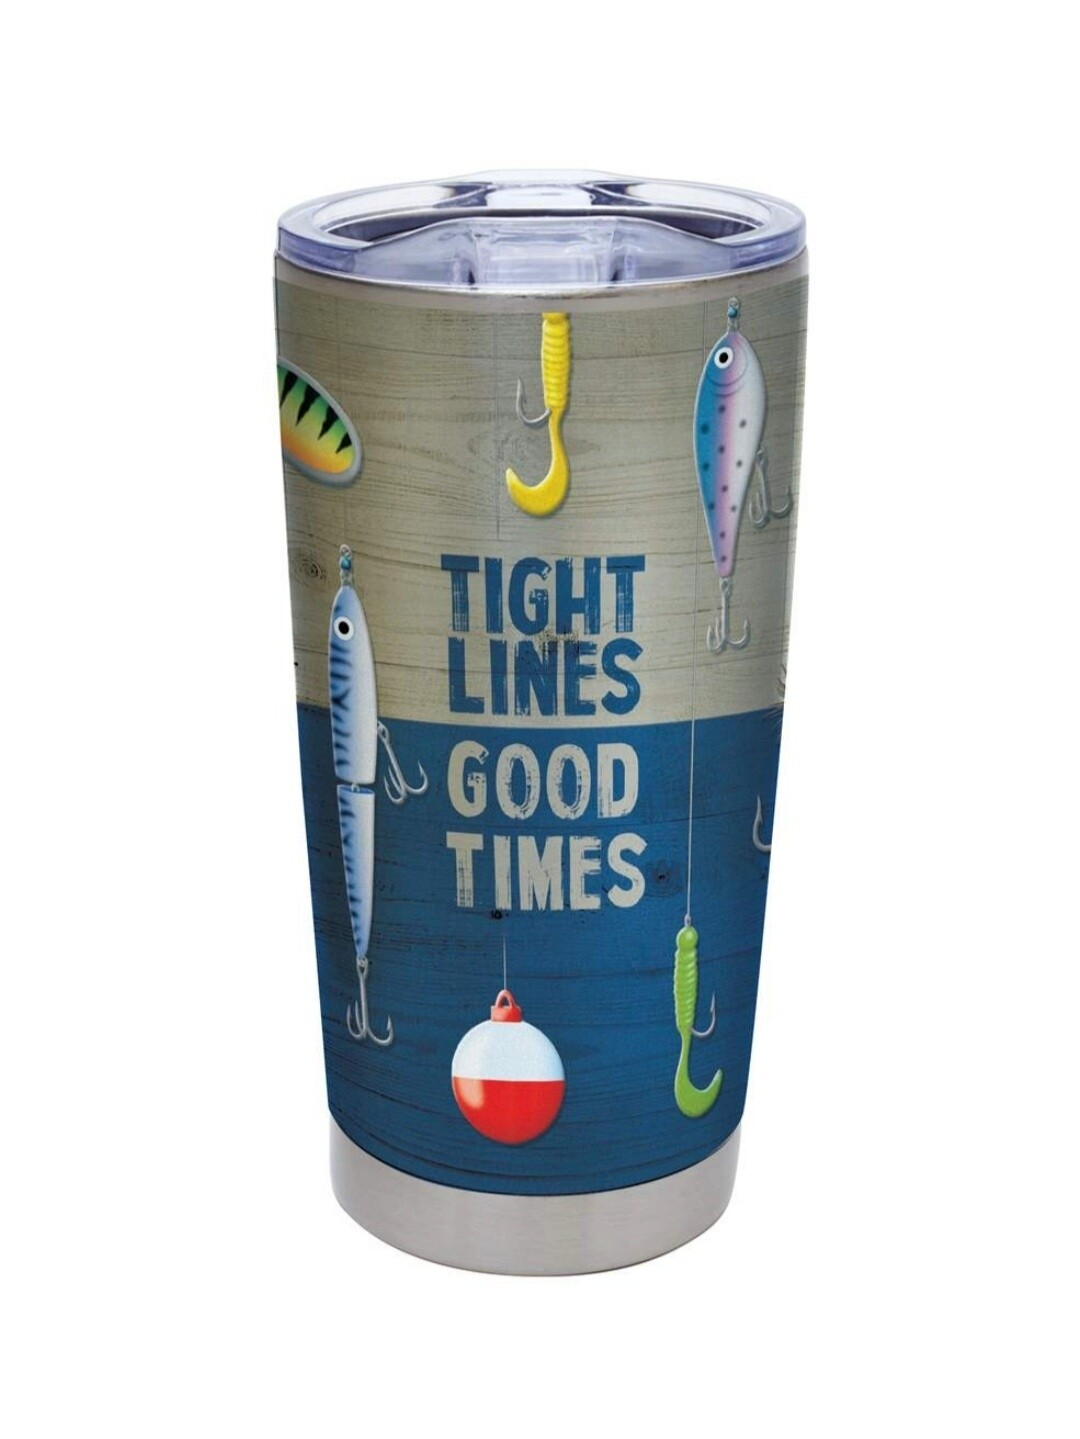 Carson 20oz Stainless Steel Tumbler - Tight Lines, Good Times